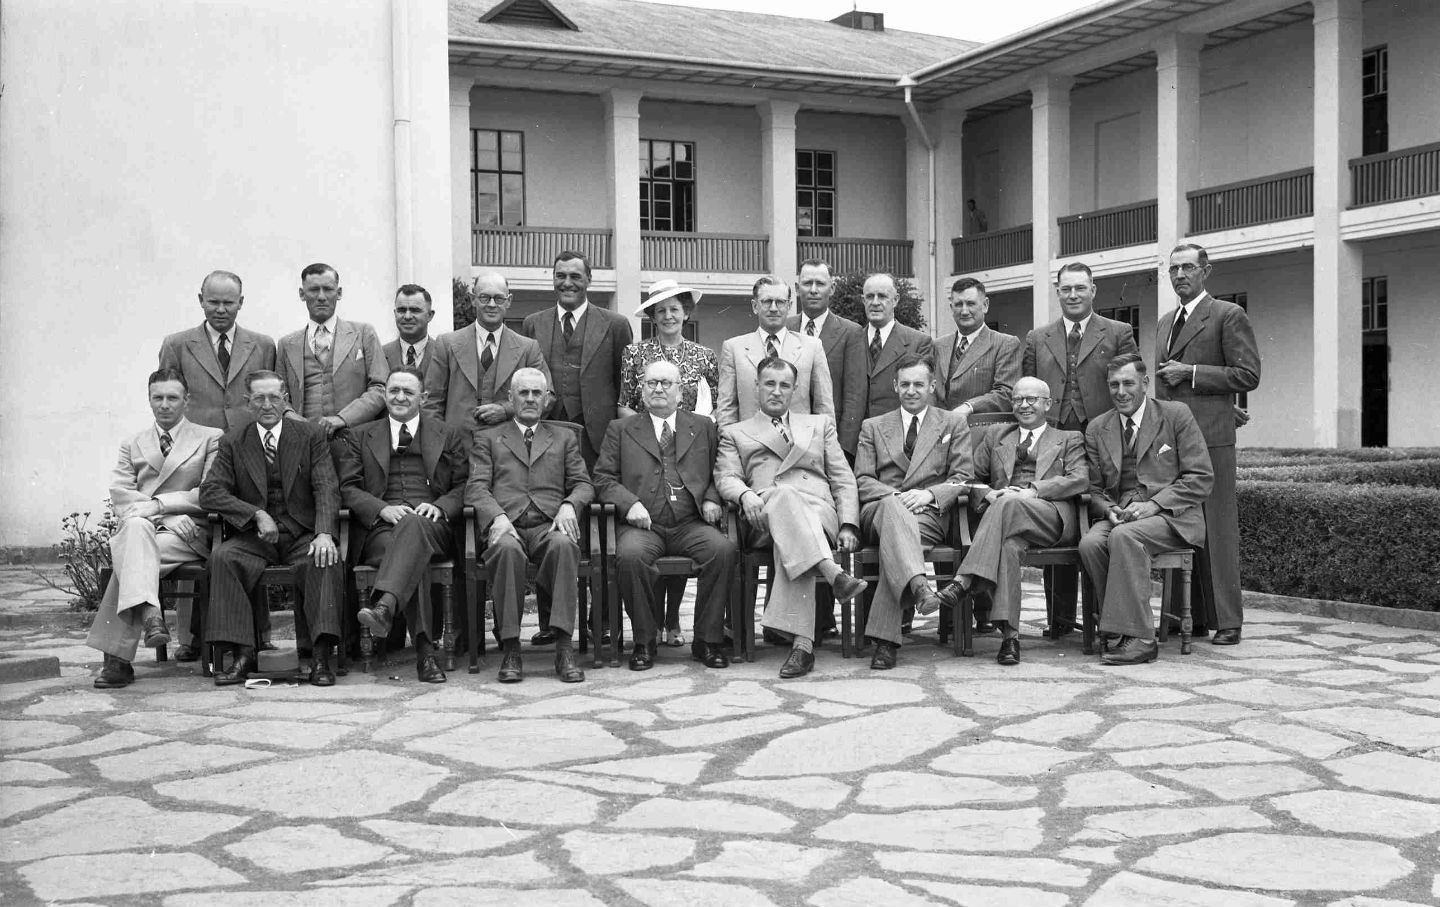 South African Prime Minister D.F. Malan in South Africa, in 1948. His  National Party endorsed and created the blueprint for apartheid.